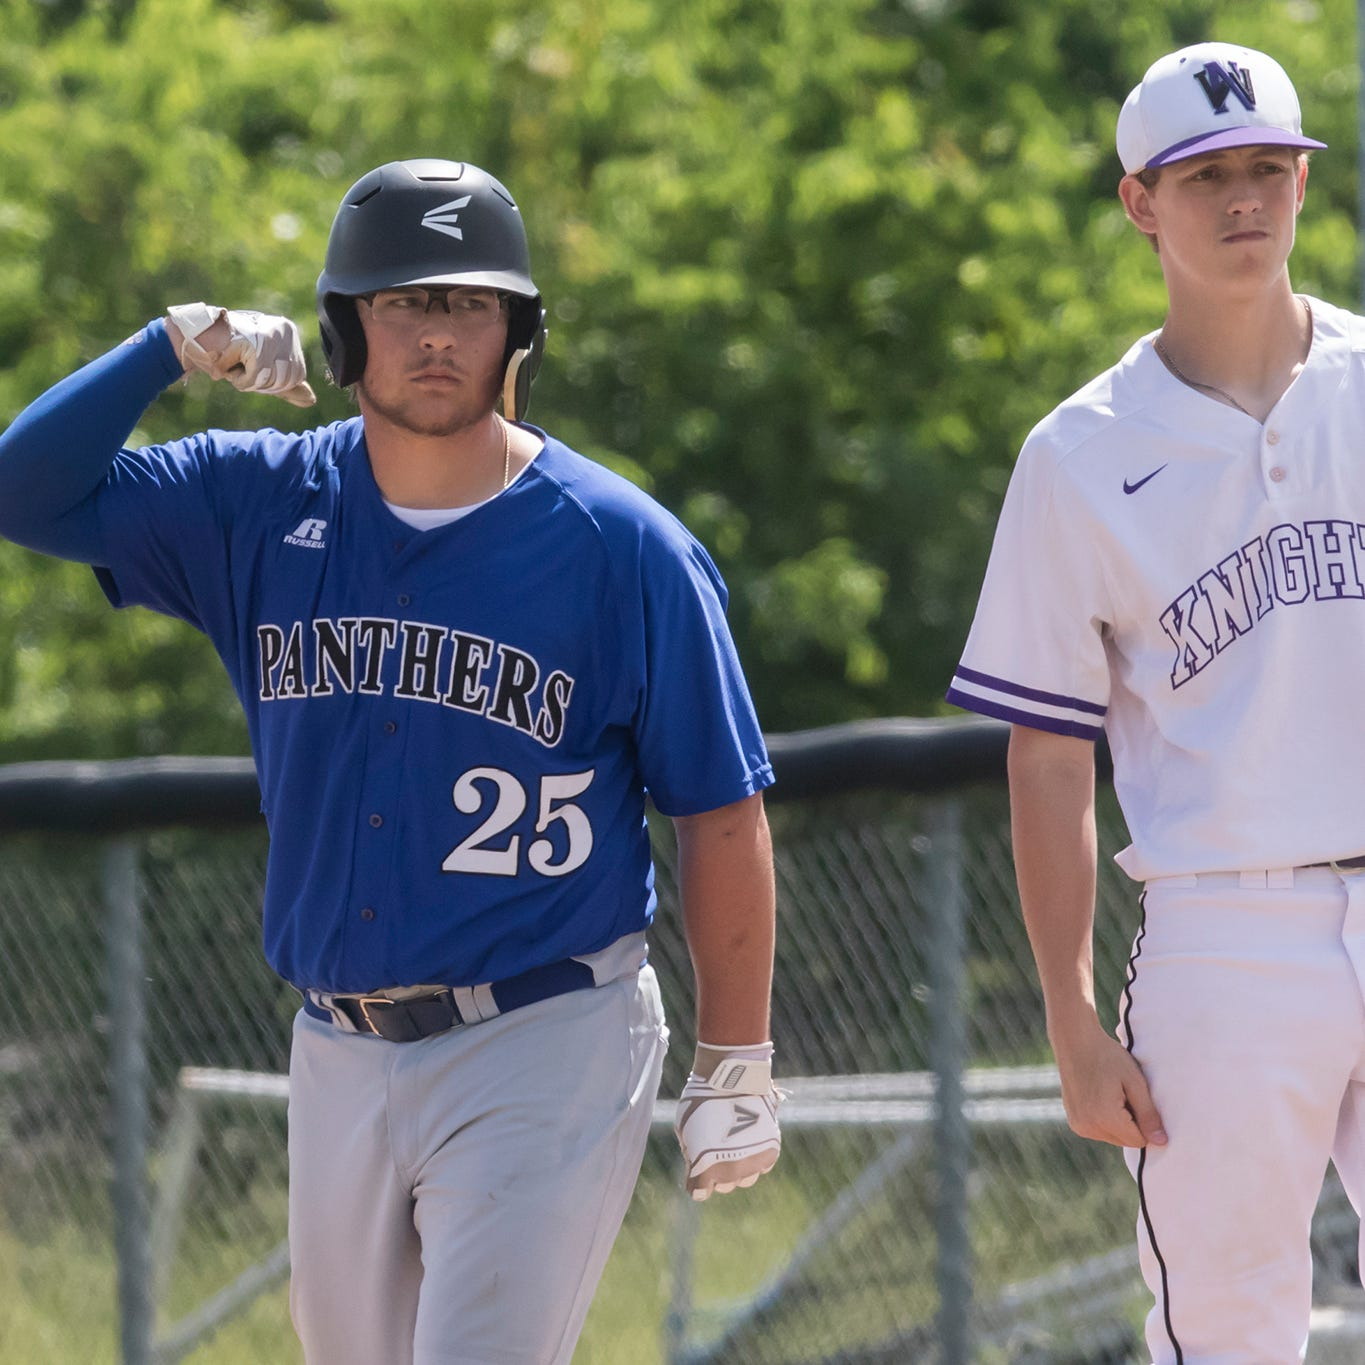 Sterlington's Braden Hough (25) flexes behind North Webster's Gavin Gilleatine (1) after his 2 RBI single in the top of the second inning during the game at Panther Field in Sterlington, La. on May 5.